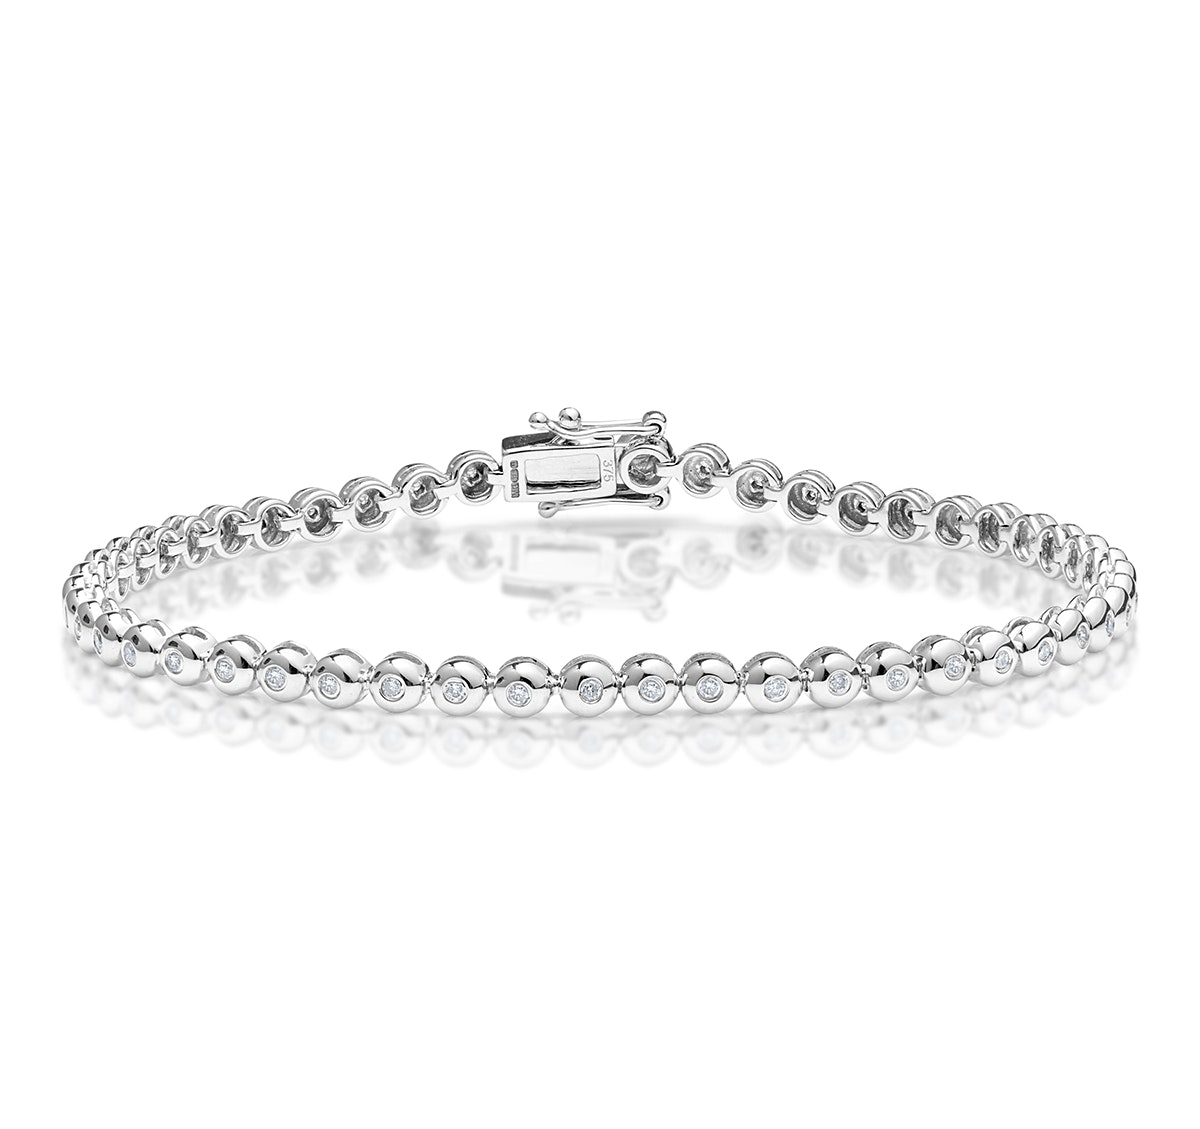 Diamond Tennis Bracelet Rubover Style 0.50ct 9K White Gold